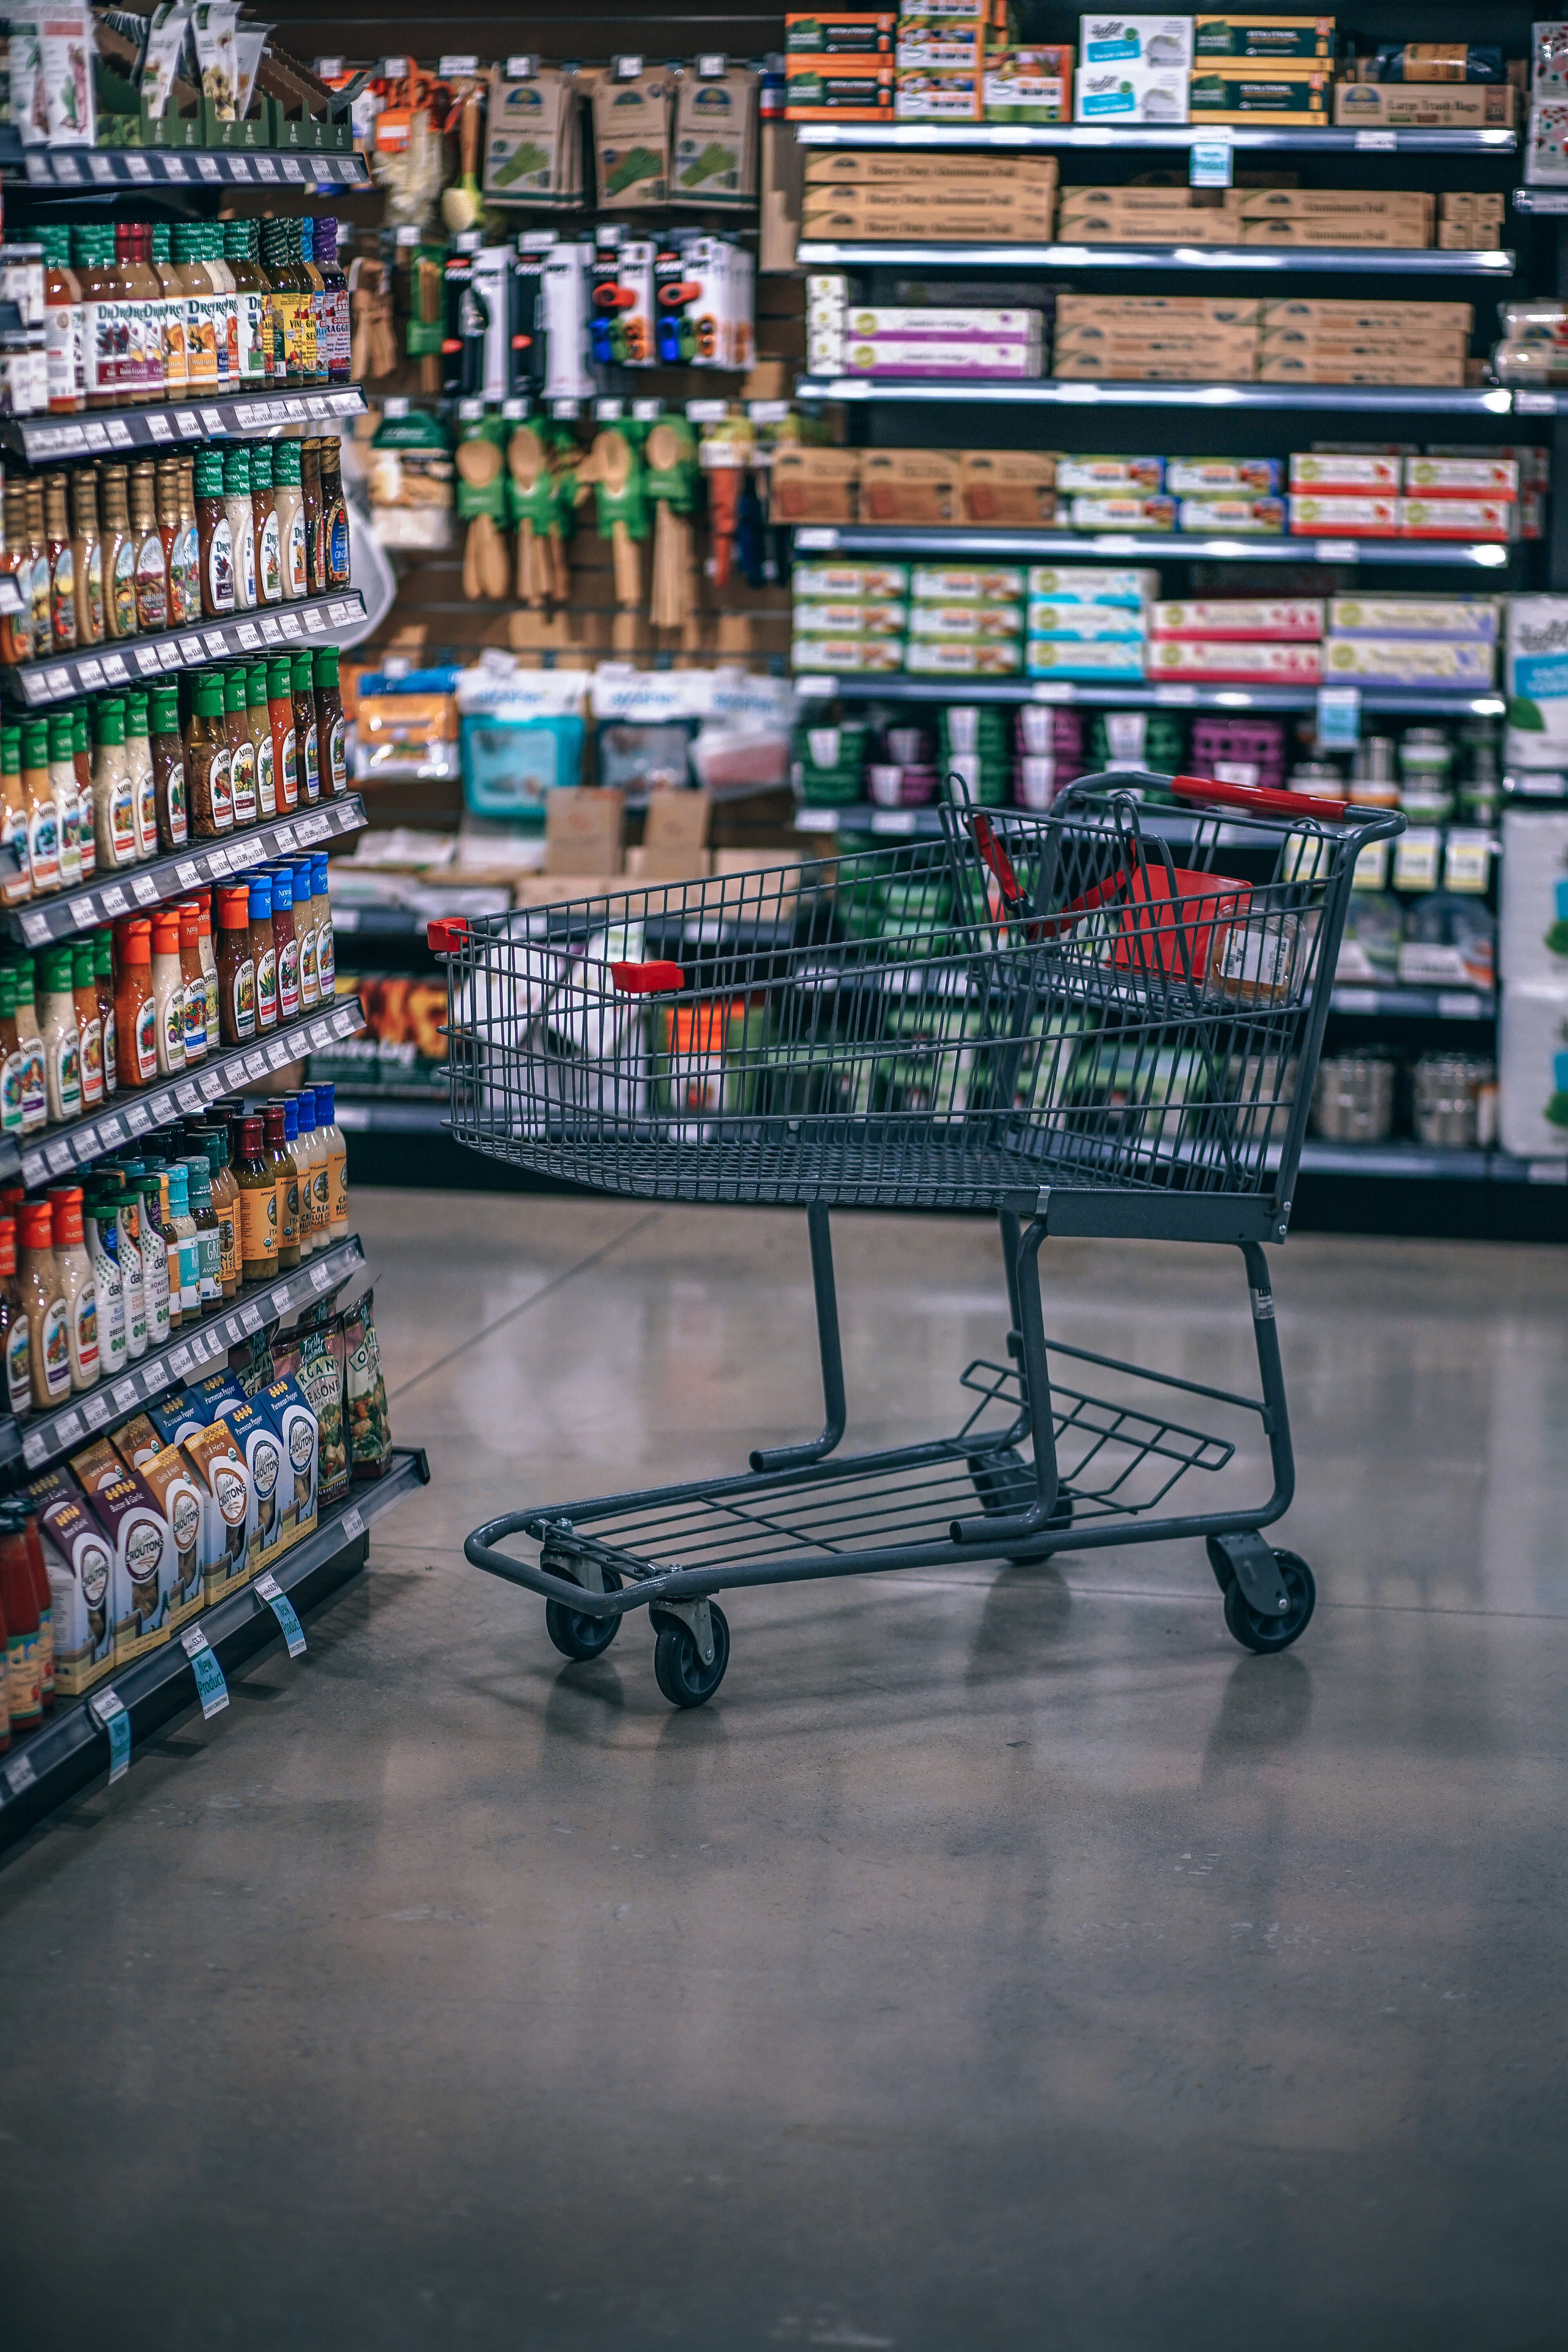 A shopping cart and food in a grocery store aisle